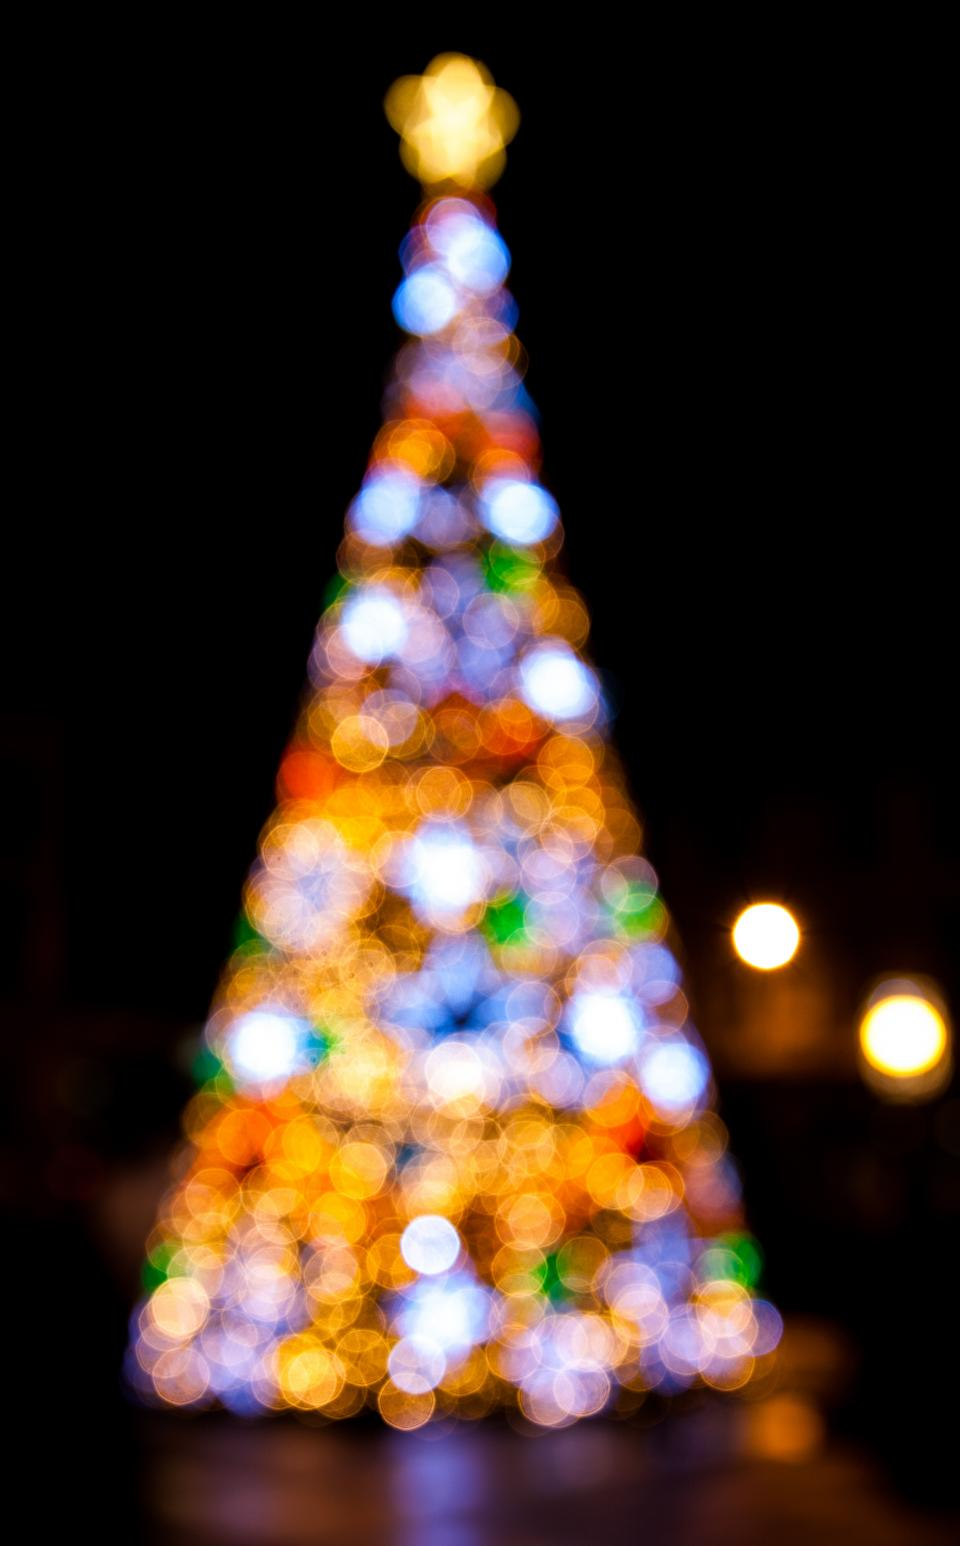 christmas tree lights dark night bokeh blur